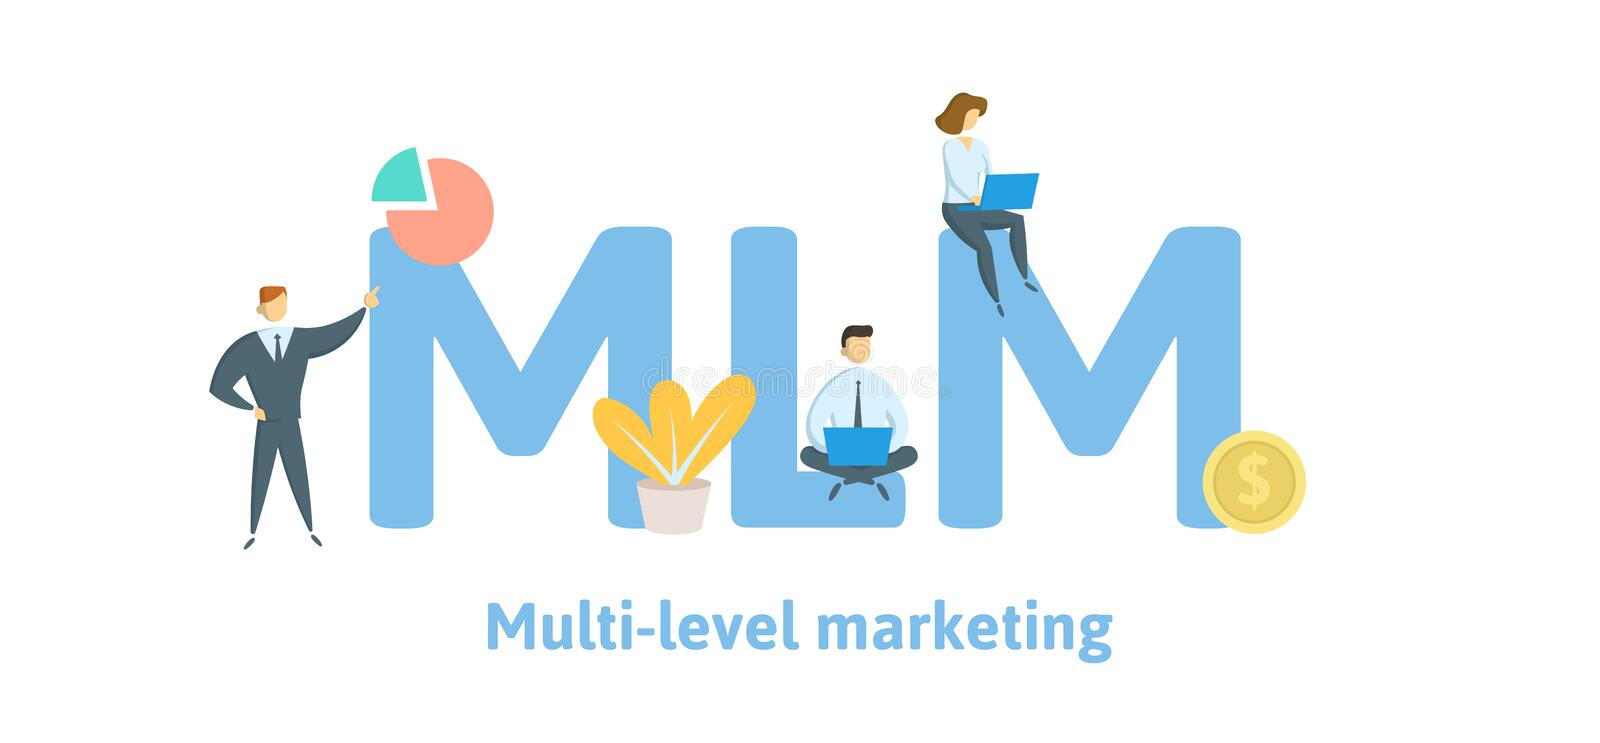 MLM, Multi Level Marketing. Concept with keywords, letters, and icons. Flat vector illustration. Isolated on white. MLM, Multi Level Marketing. Concept with vector illustration